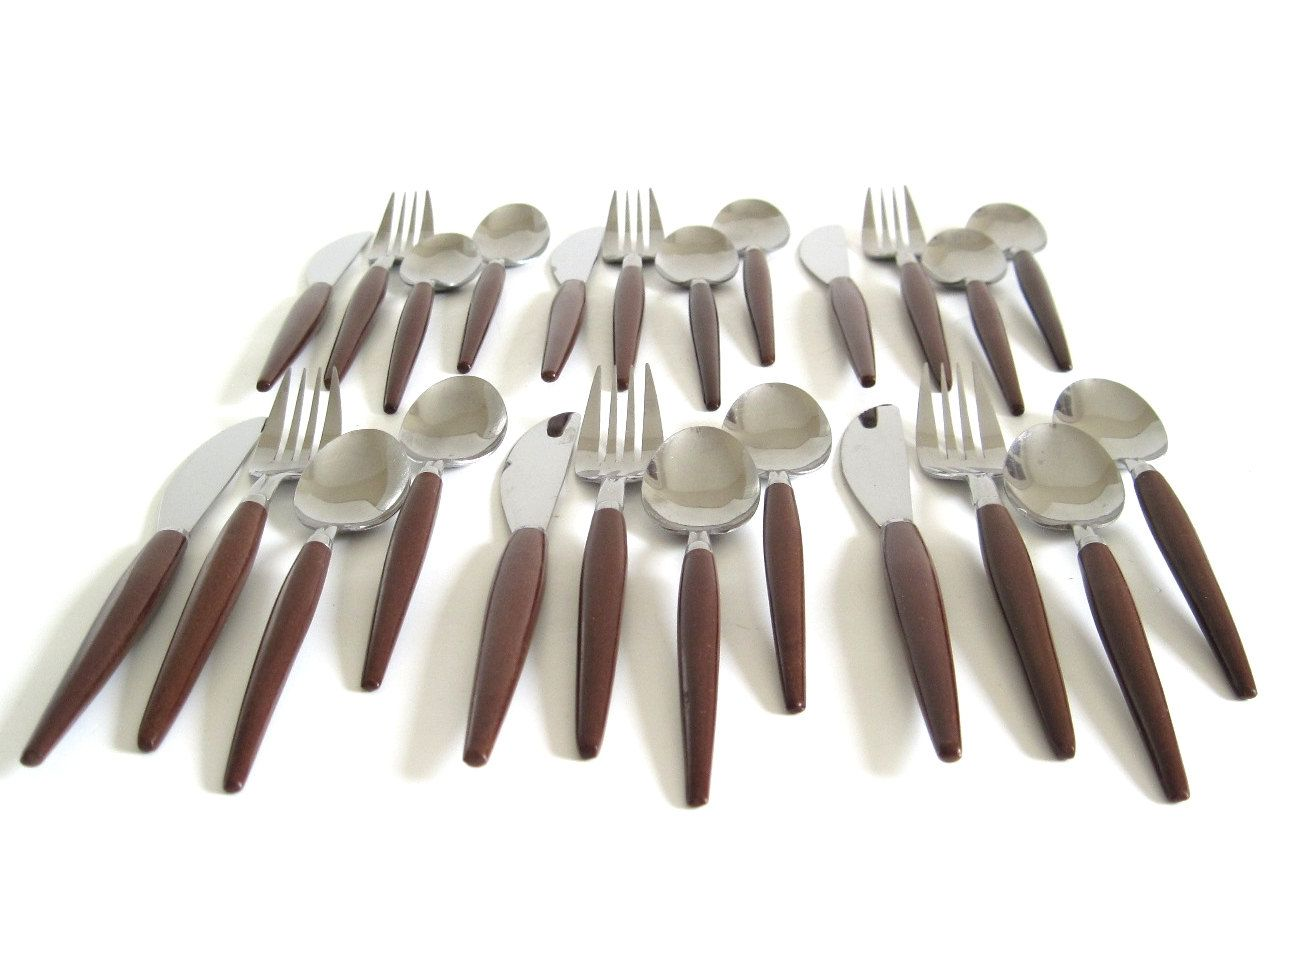 Contemporary Stainless Steel Flatware Stainless Flatware Set Quotwood Quot Handles Basic Service For